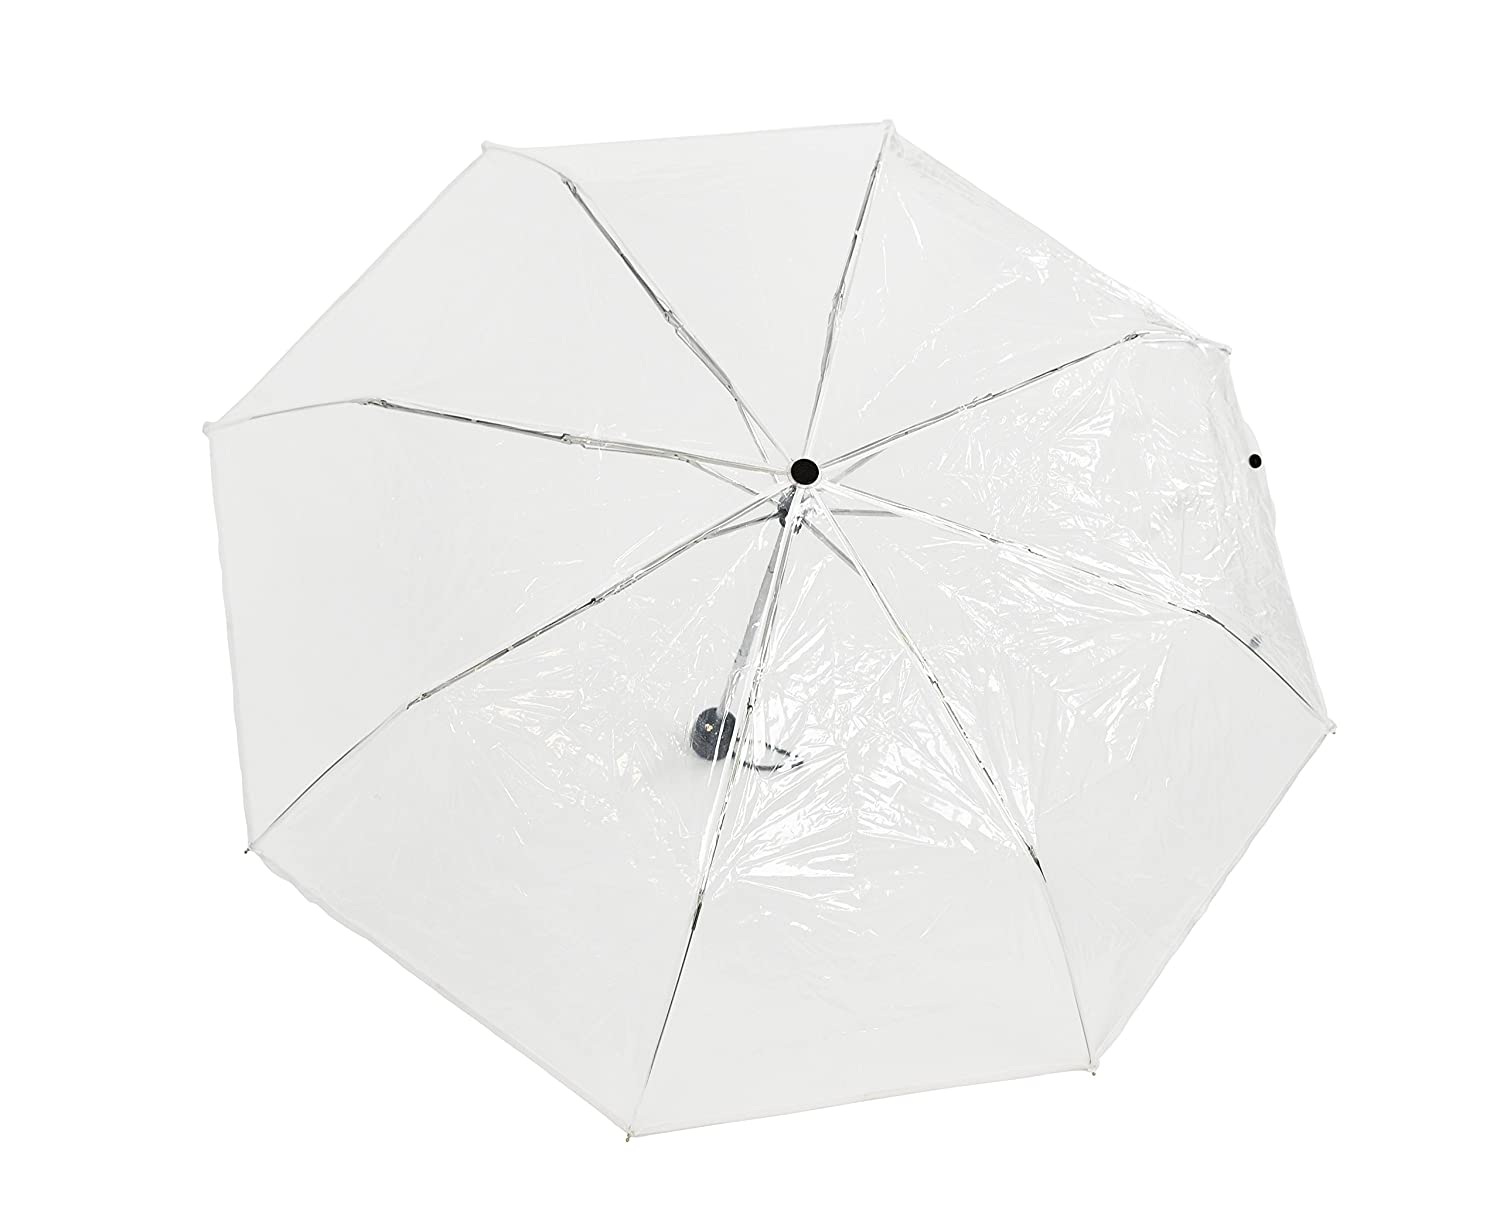 Home X Clear Travel & Folding Umbrella, Perfect Size For Portable Use, Windproof Design Provides Protection In All Kinds Of Weather by Home X